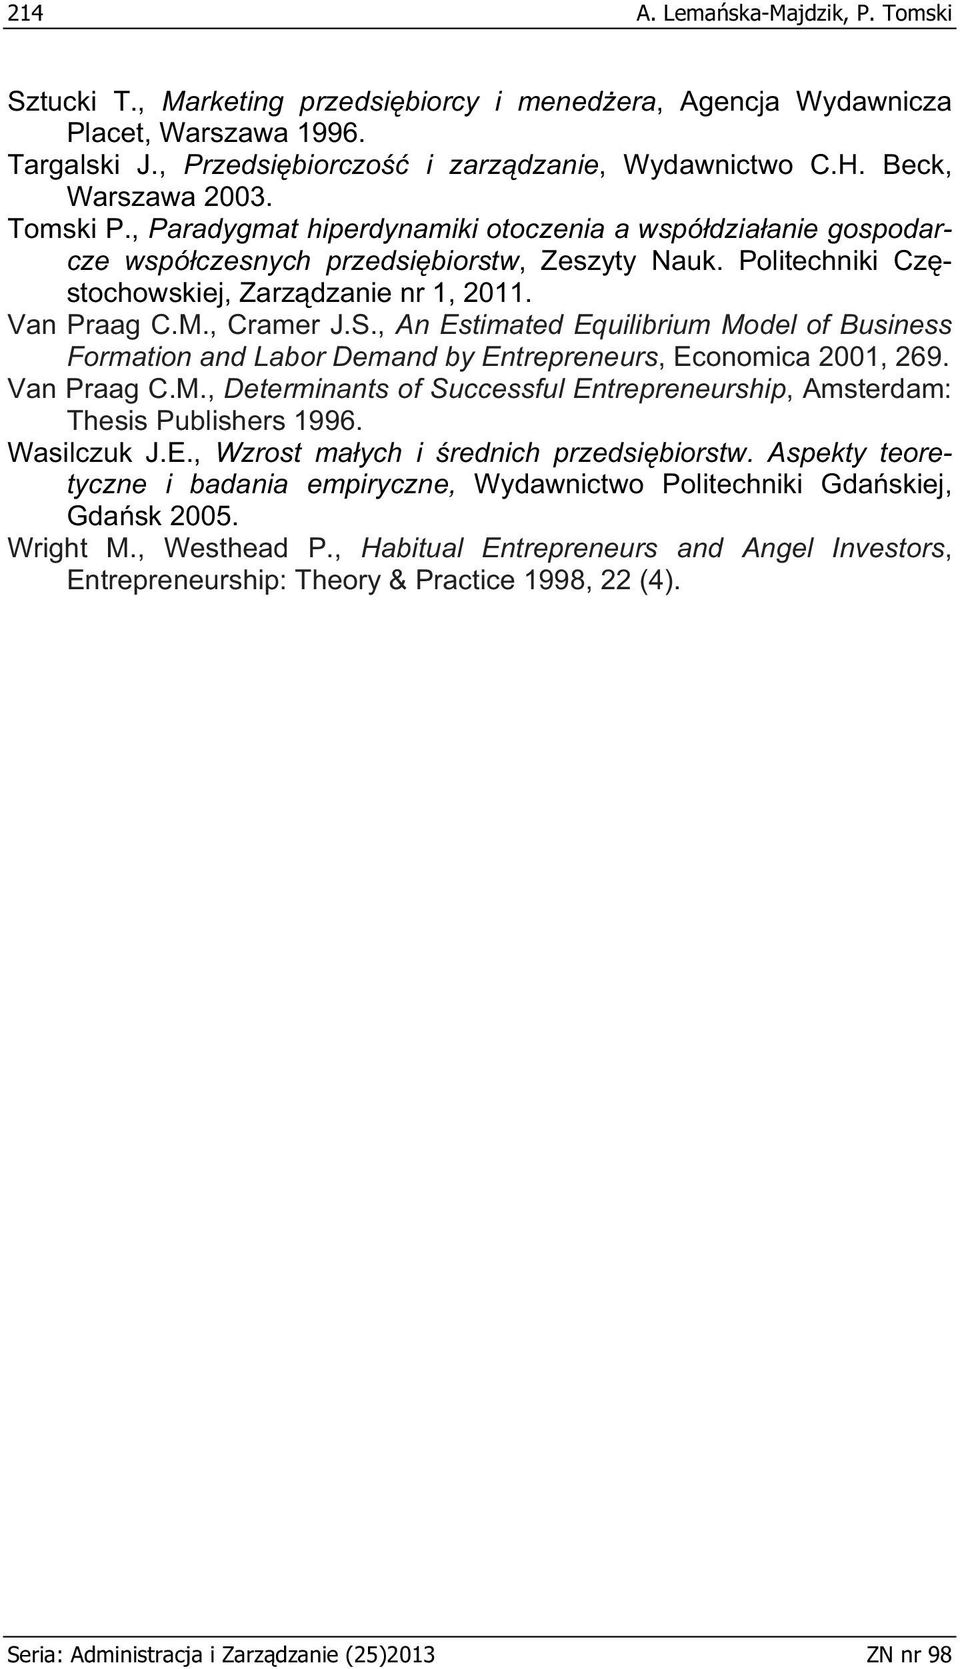 Van Praag C.M., Cramer J.S., An Estimated Equilibrium Model of Business Formation and Labor Demand by Entrepreneurs, Economica 2001, 269. Van Praag C.M., Determinants of Successful Entrepreneurship, Amsterdam: Thesis Publishers 1996.